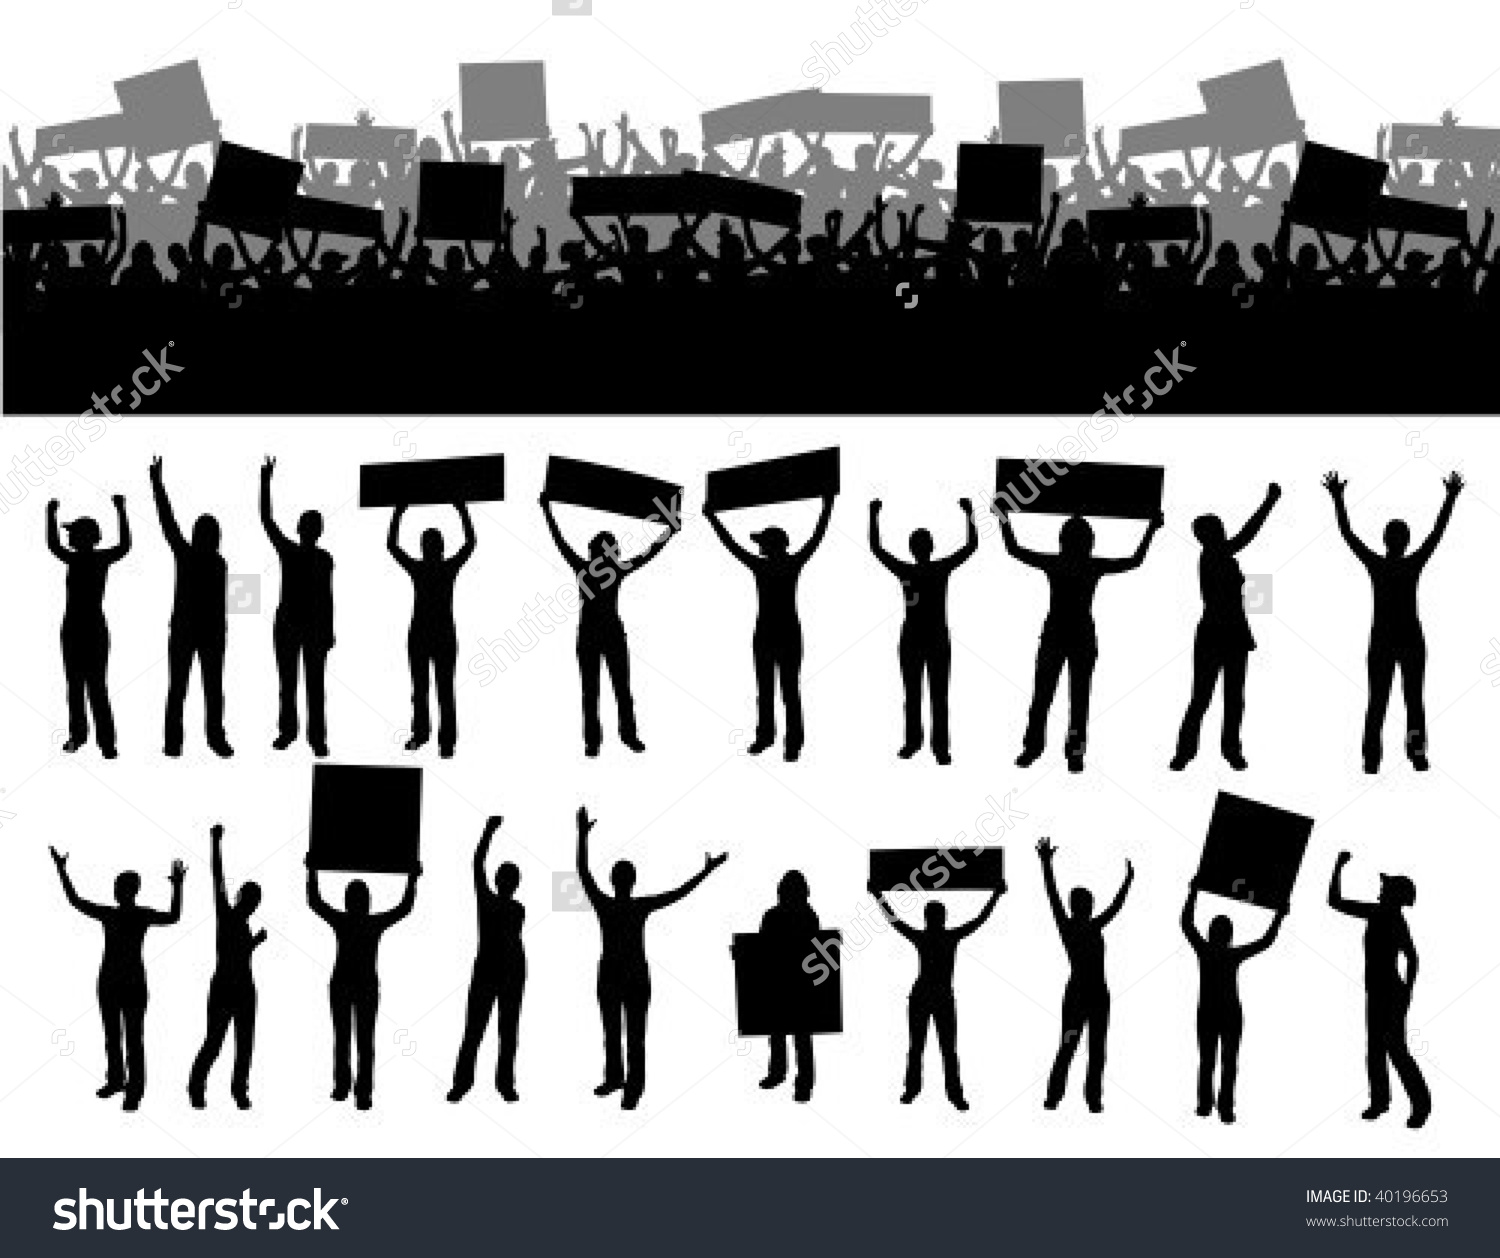 Lots Furious People Protesting Signs Silhouette Stock Vector.